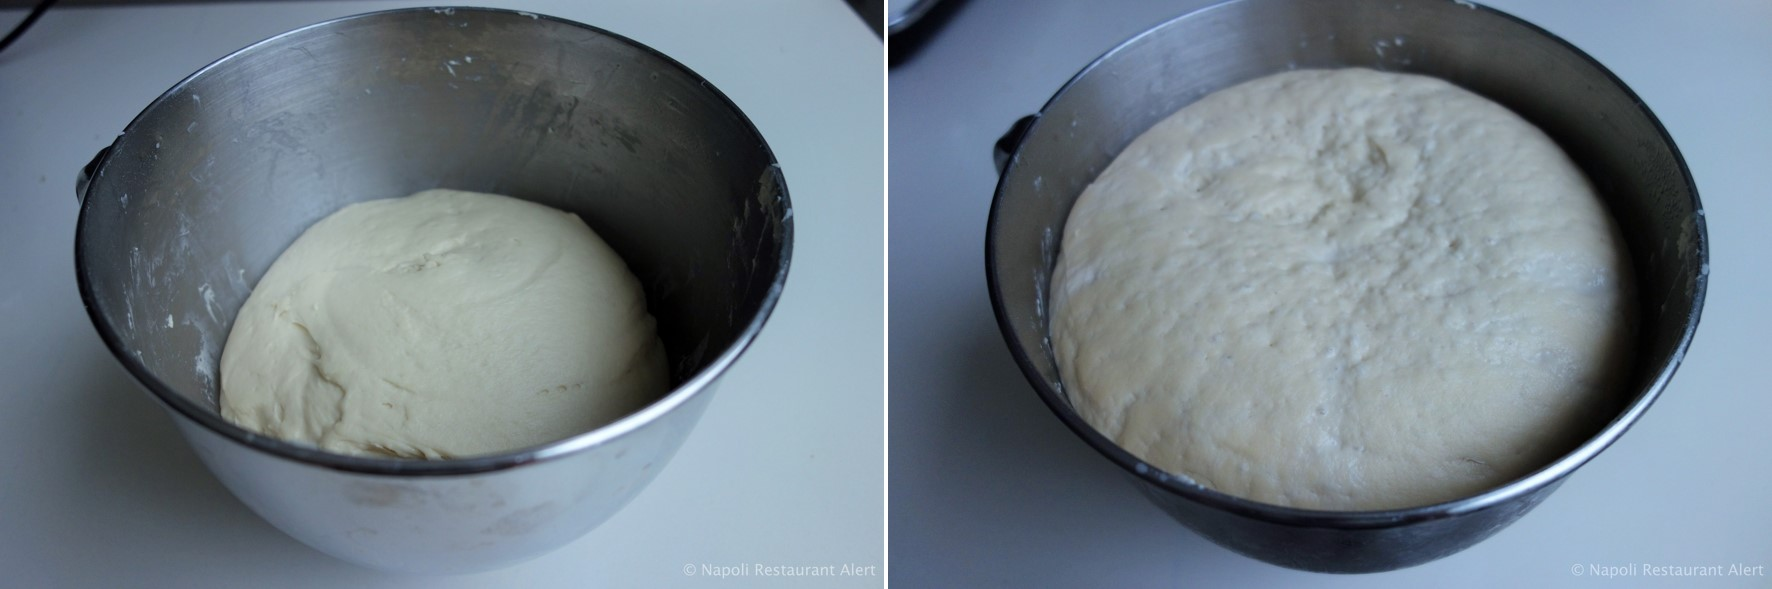 Neverfail pizza dough | The Napoli Alert